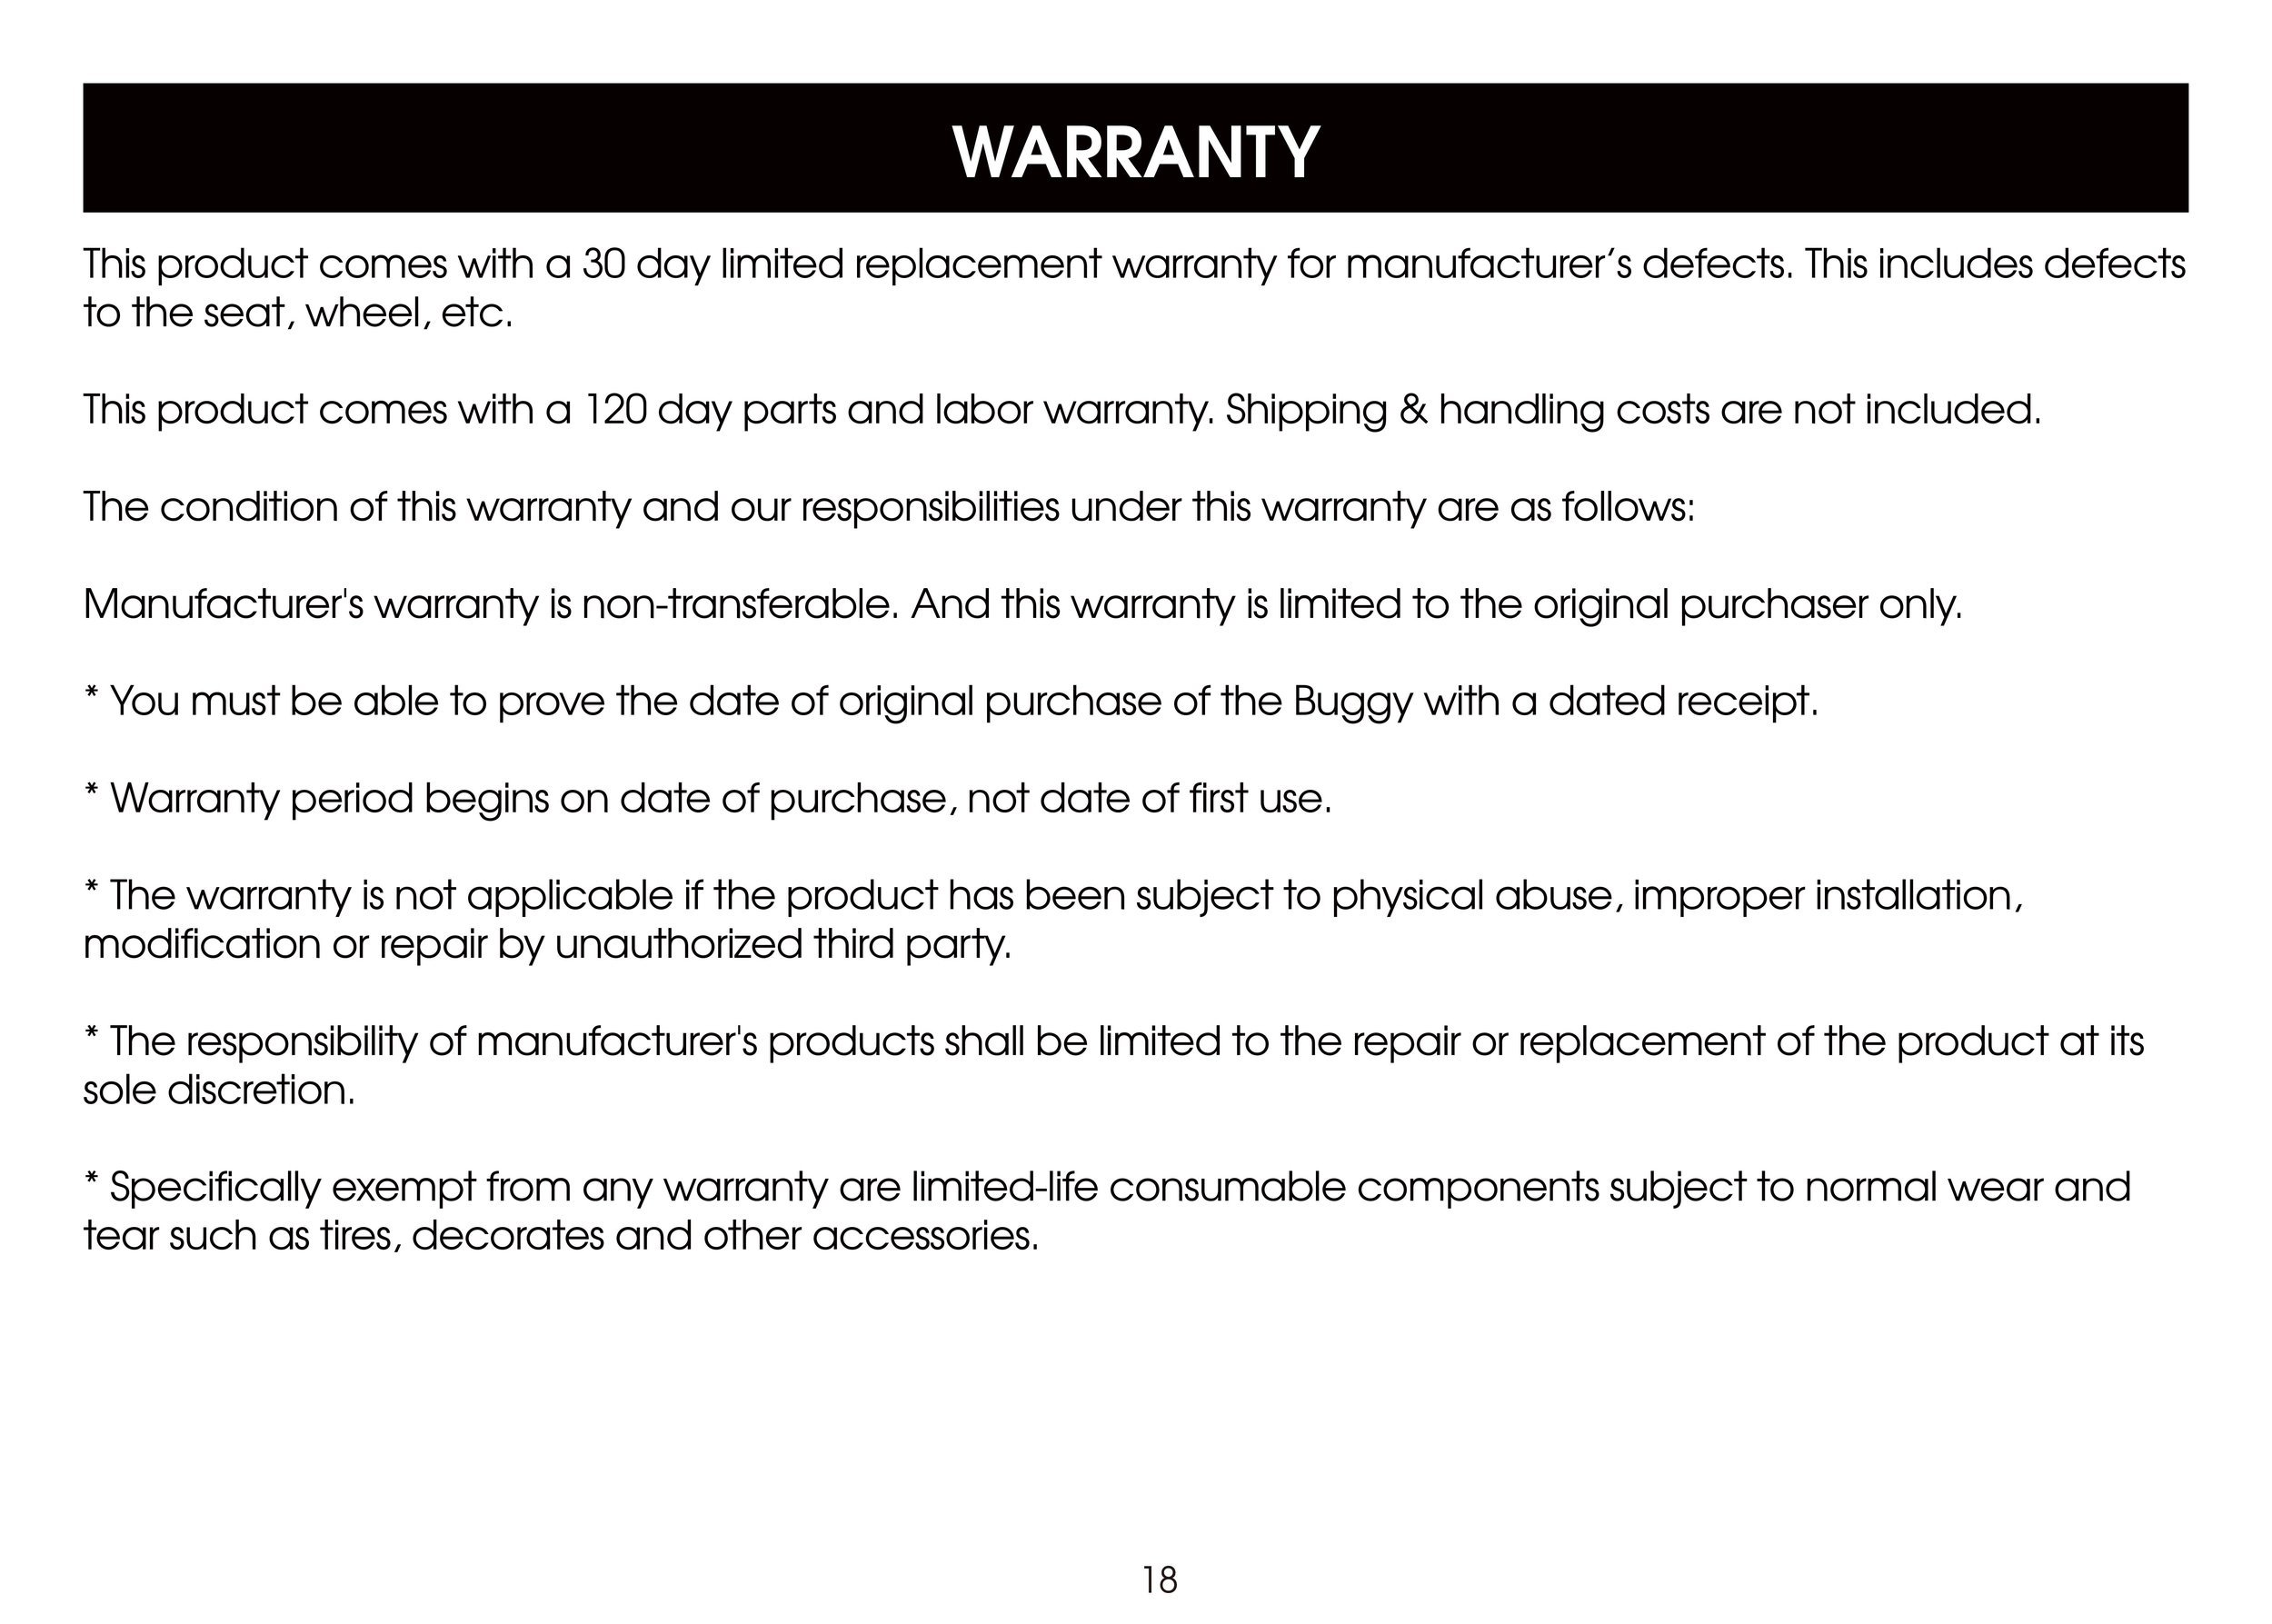 Pages from HY-H1-BGY-Manual_20171030 19.jpg